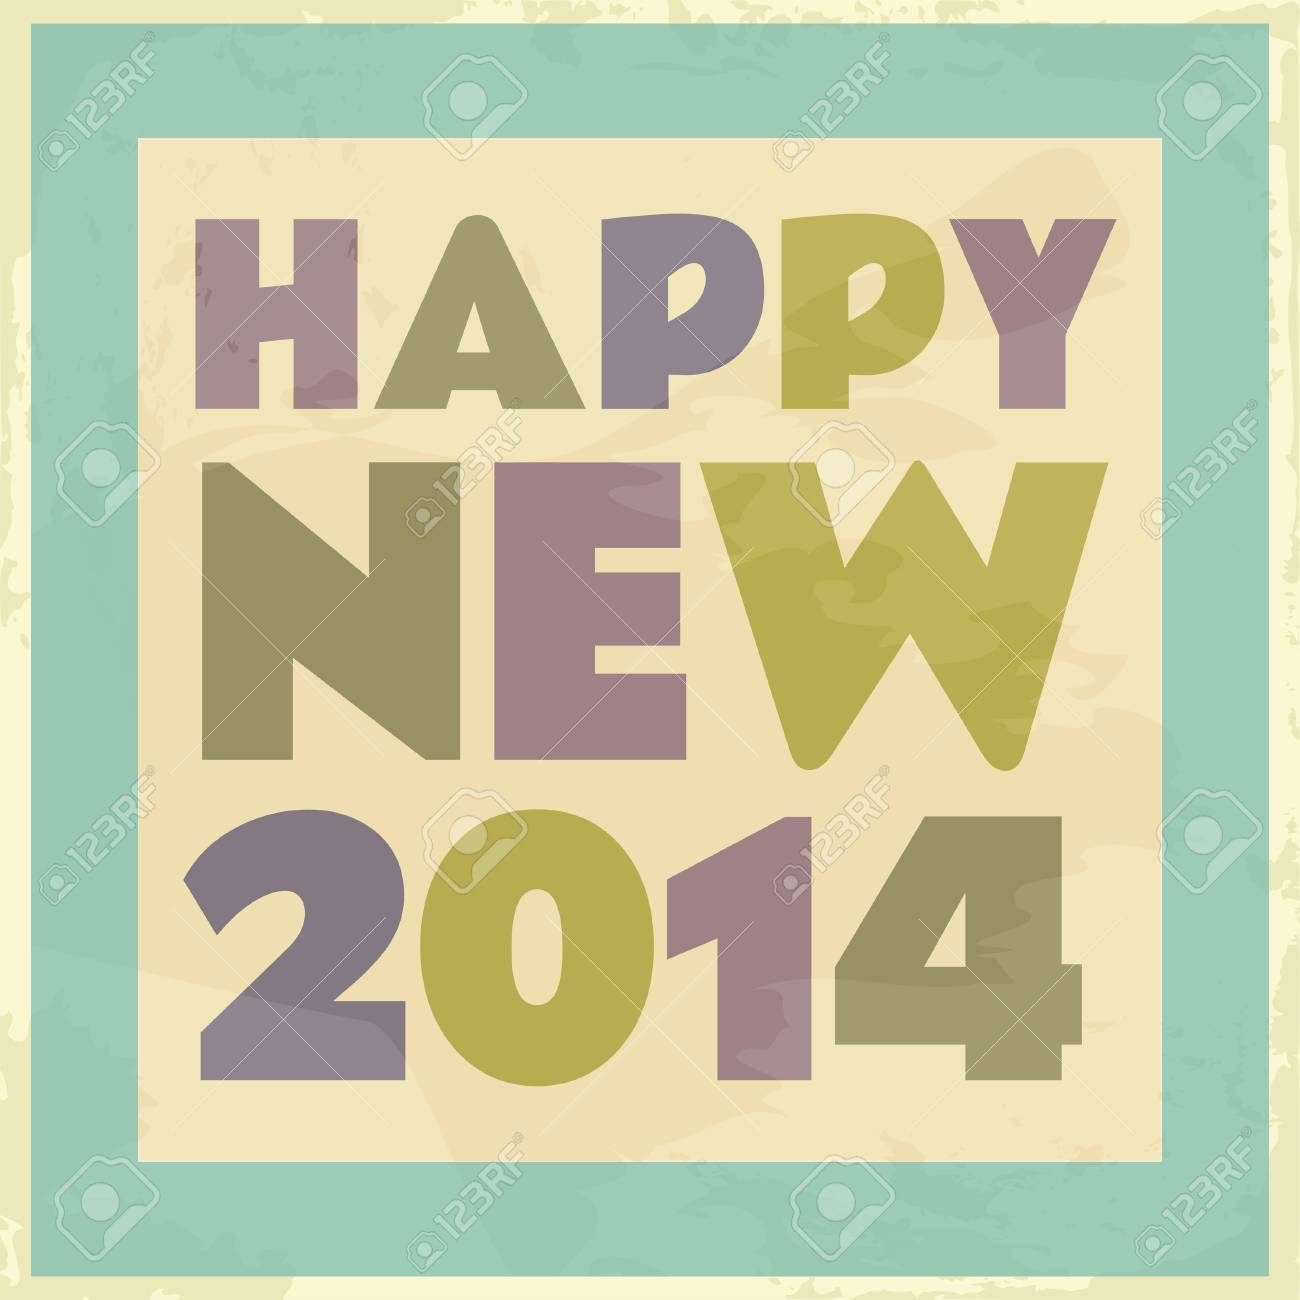 Happy New 2014 vintage style card. Stock Vector - 23516168